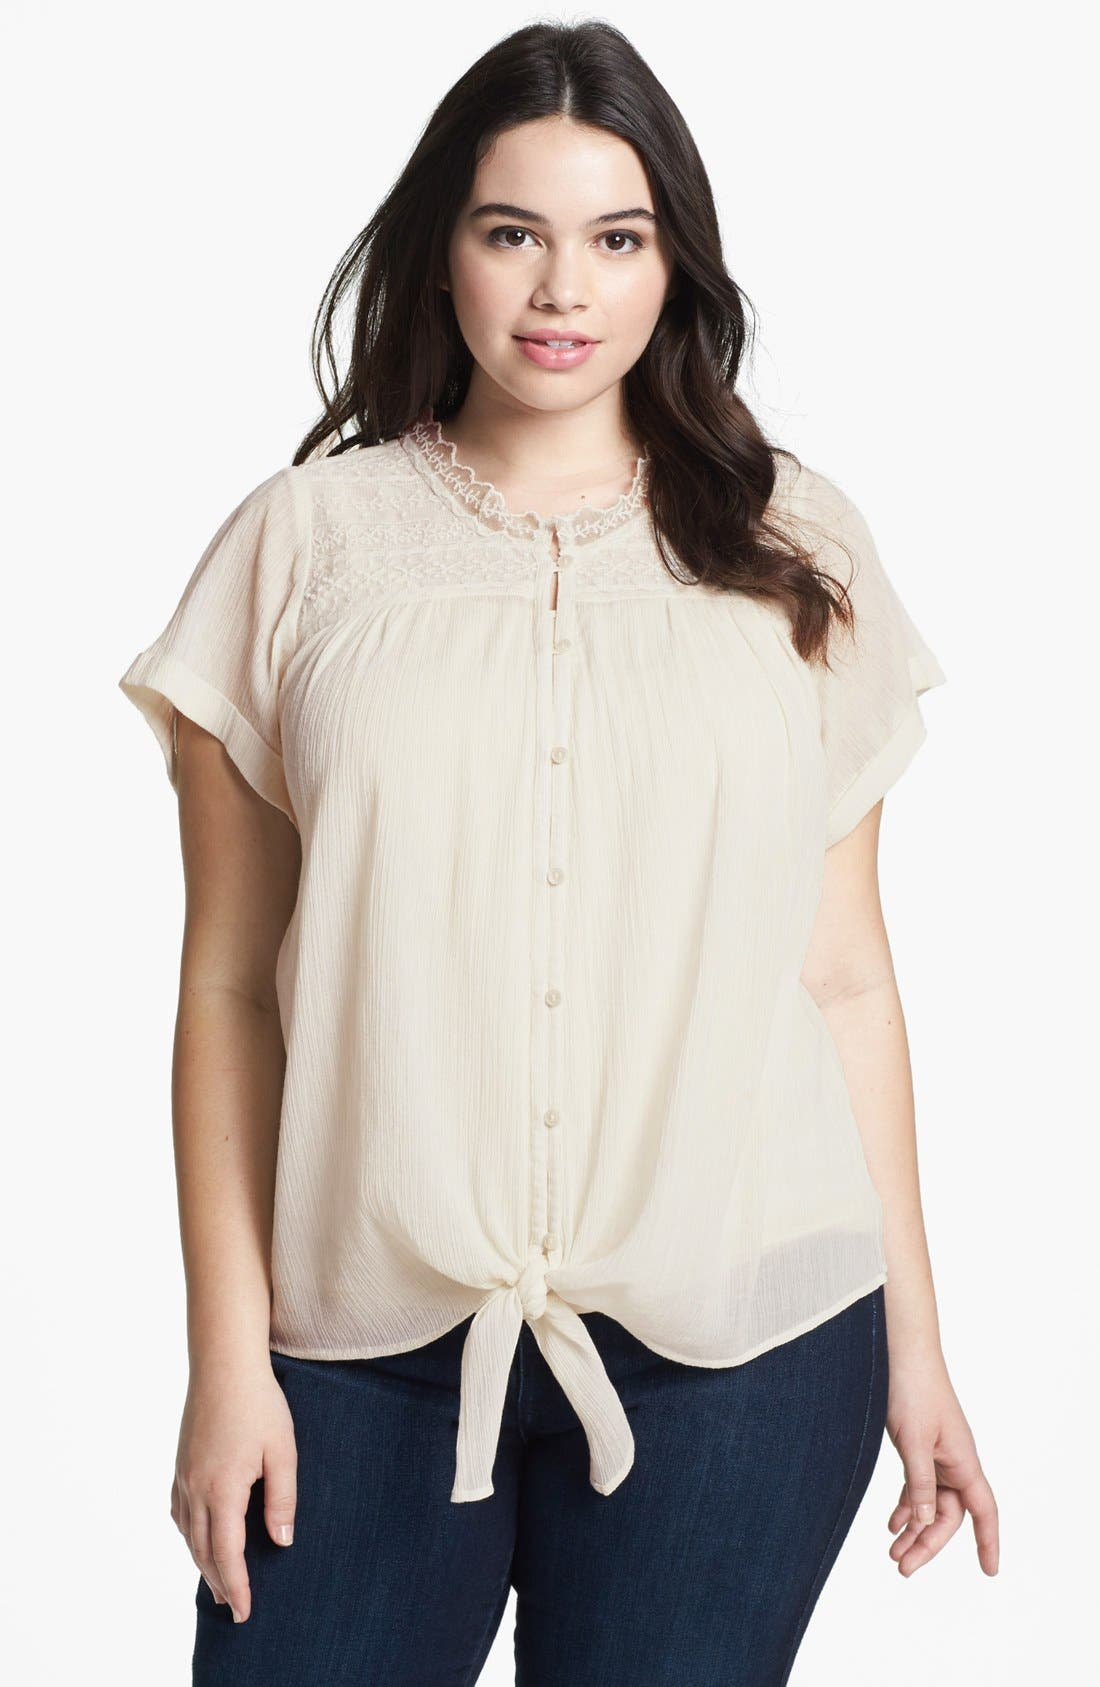 Alternate Image 1 Selected - Lucky Brand 'Blakely' Tie Front Top (Plus)